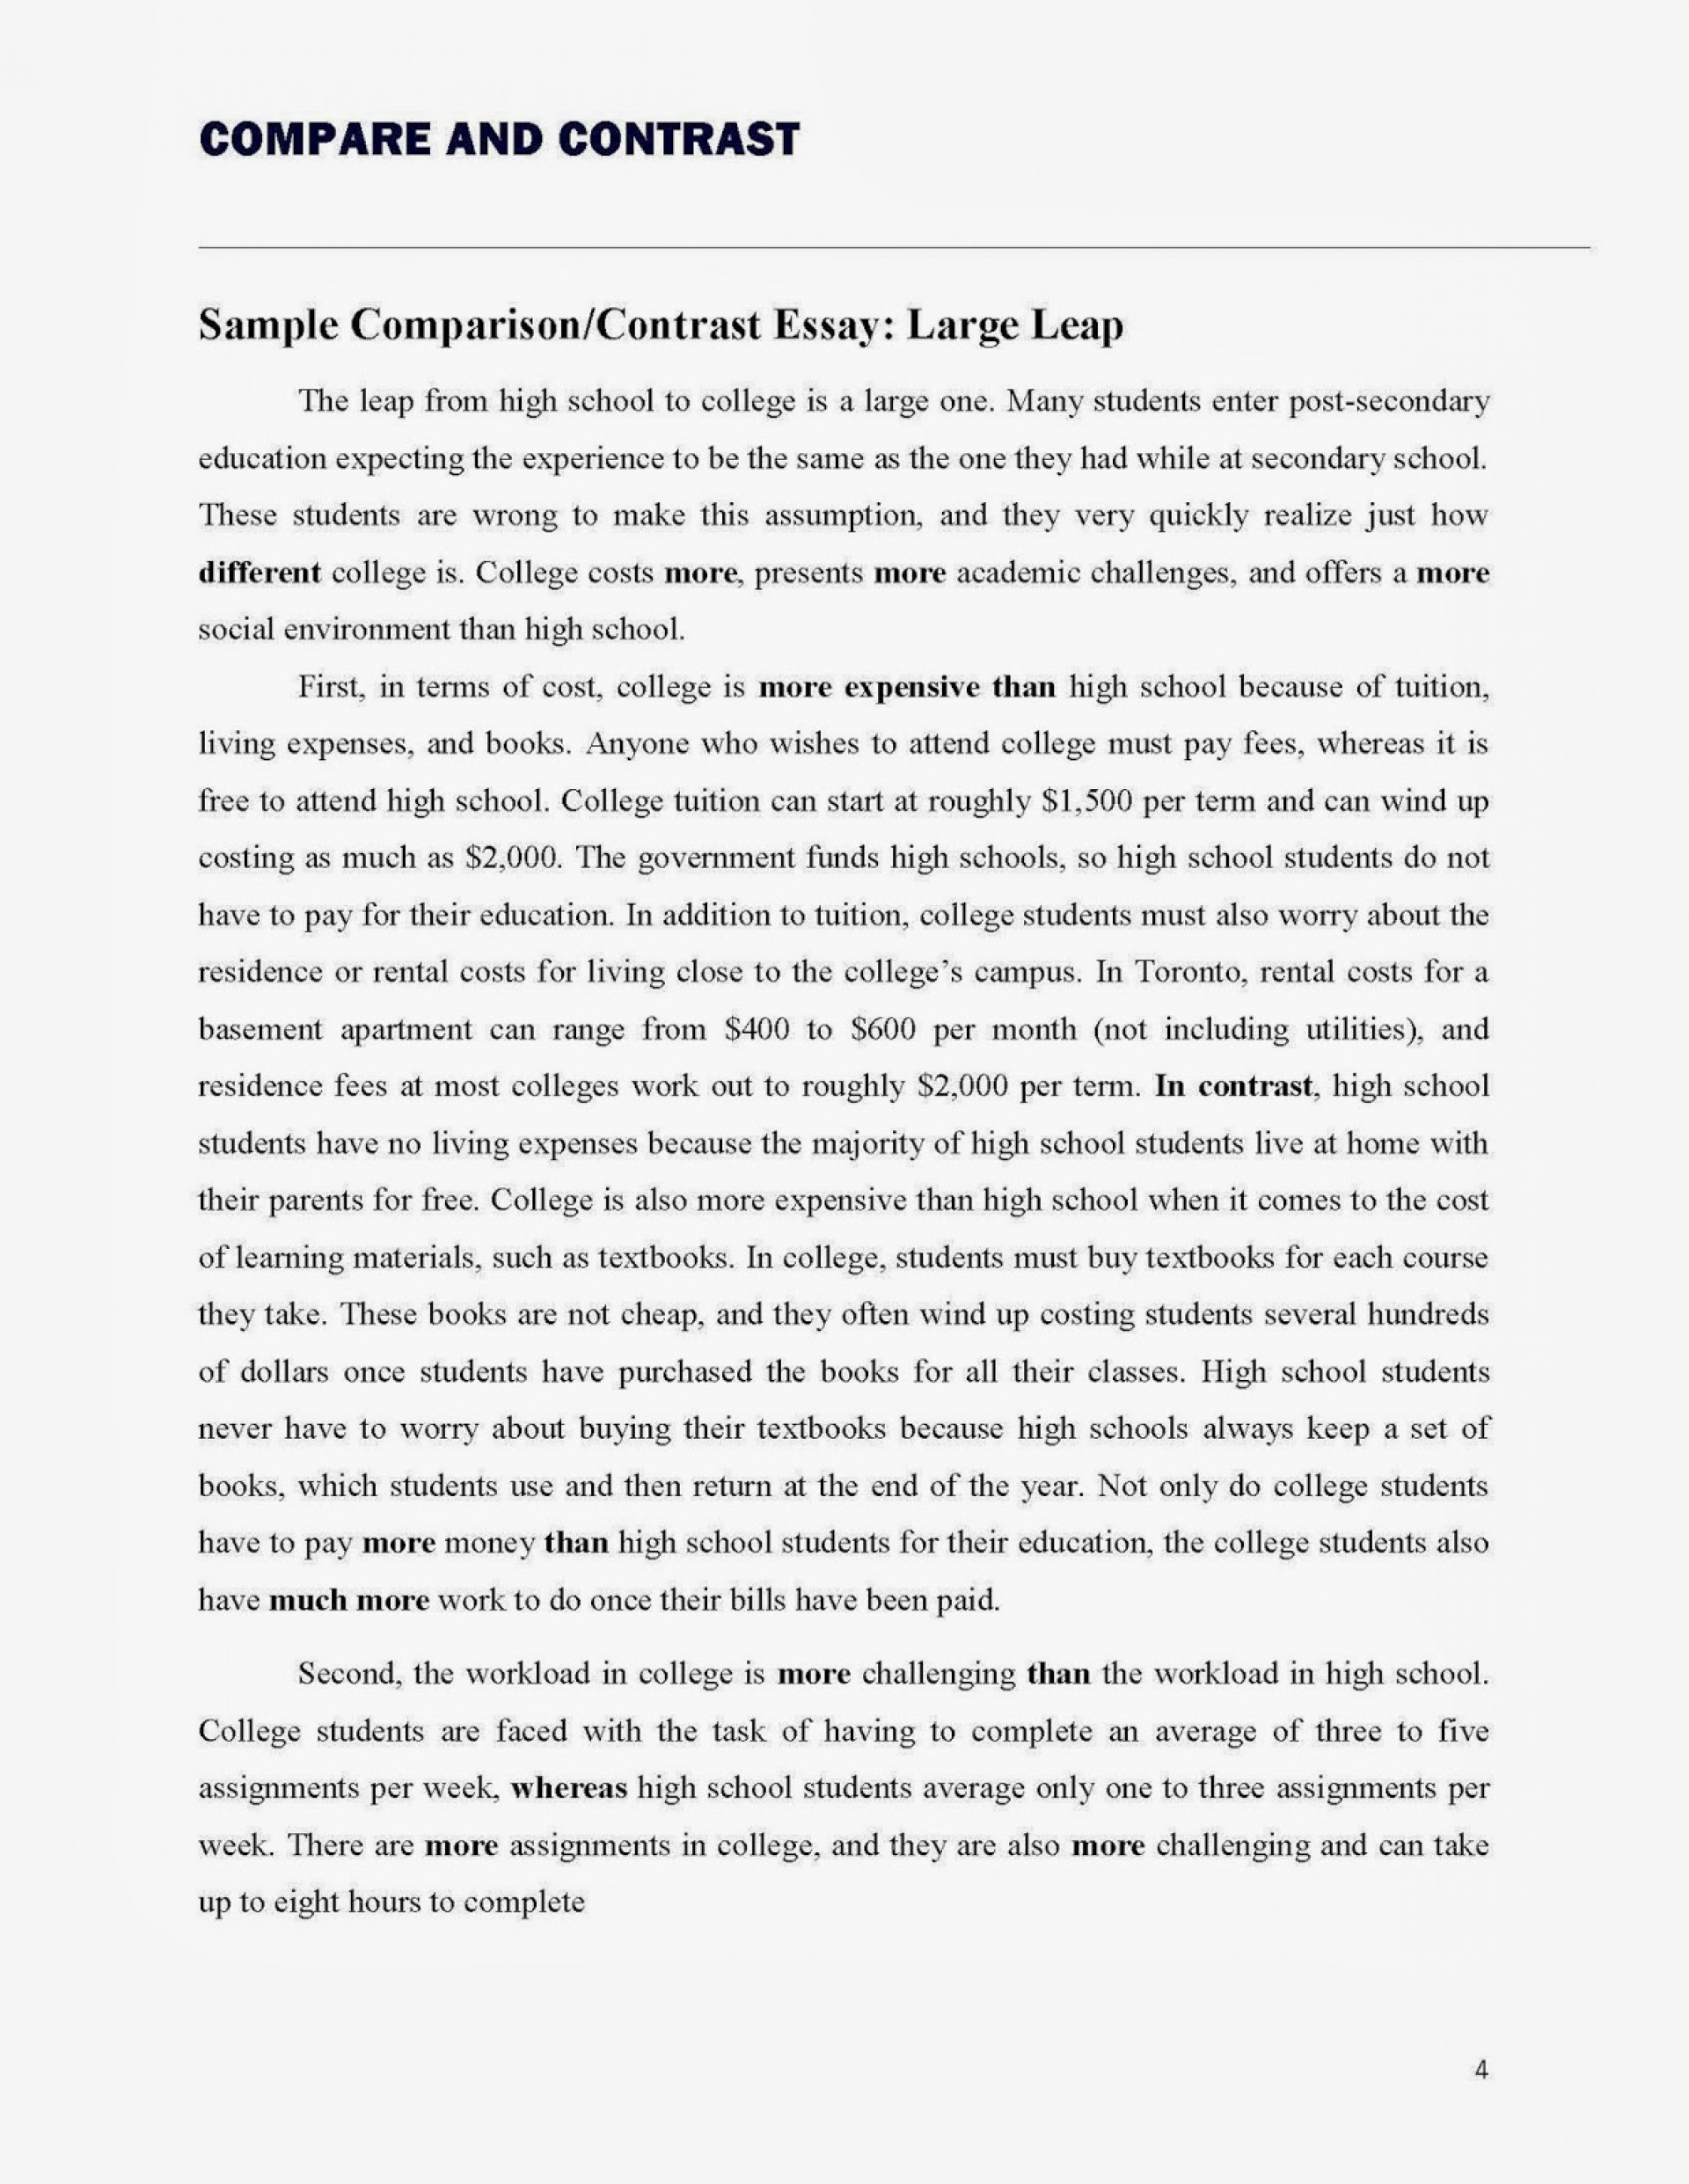 006 Essay Example Compare And Contrast Dog Cat Compare2band2bcontrast2bessay Page 4 Excellent Comparison Between Cats Dogs Pet 1920